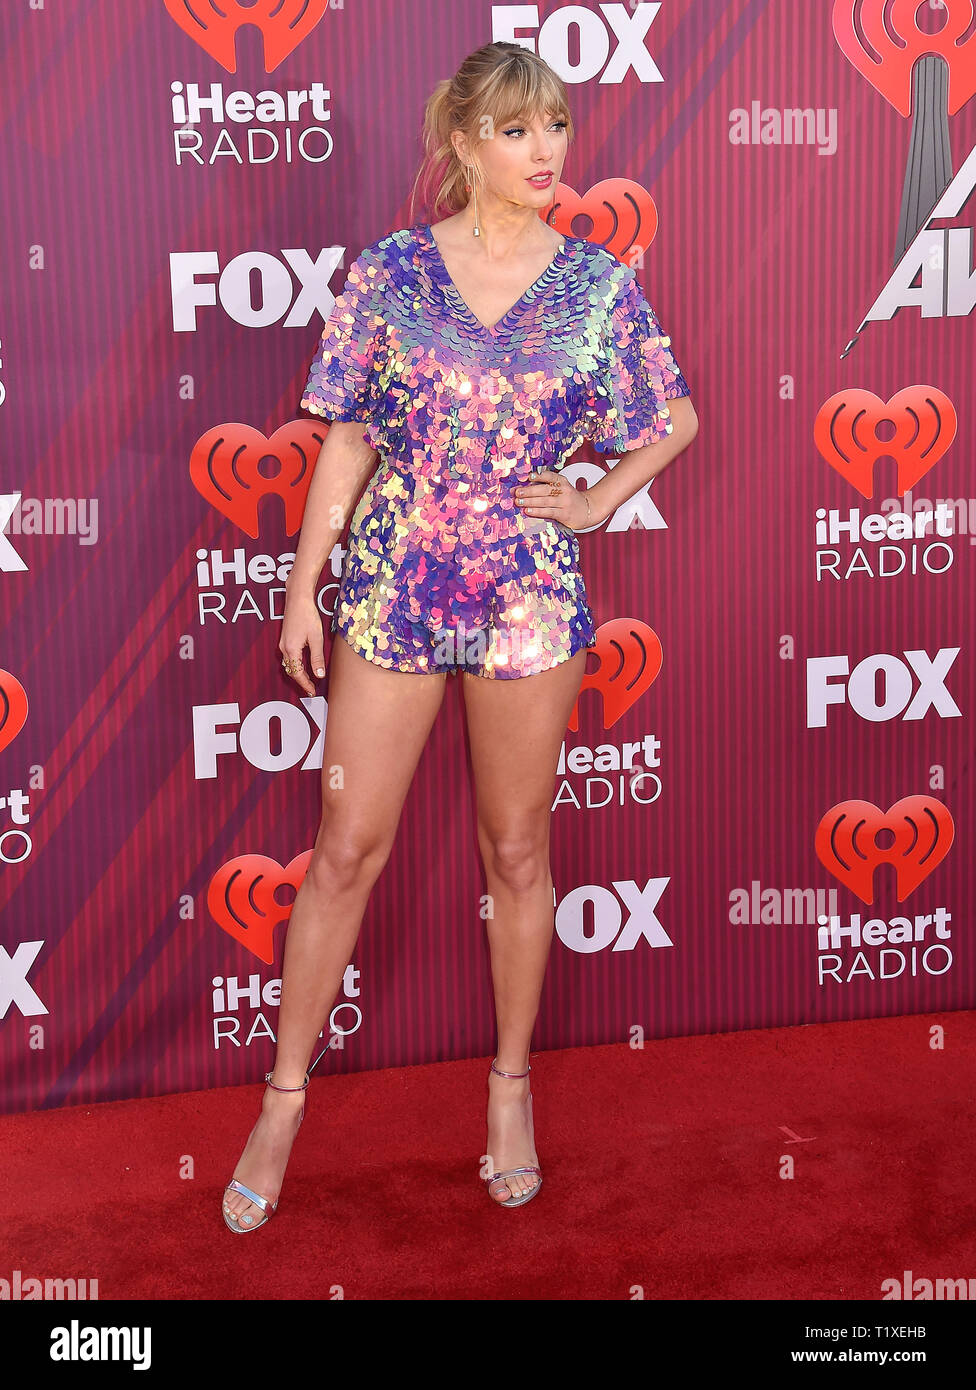 TAylor swift US singer at the 2019 iHeartRadio Music Awards